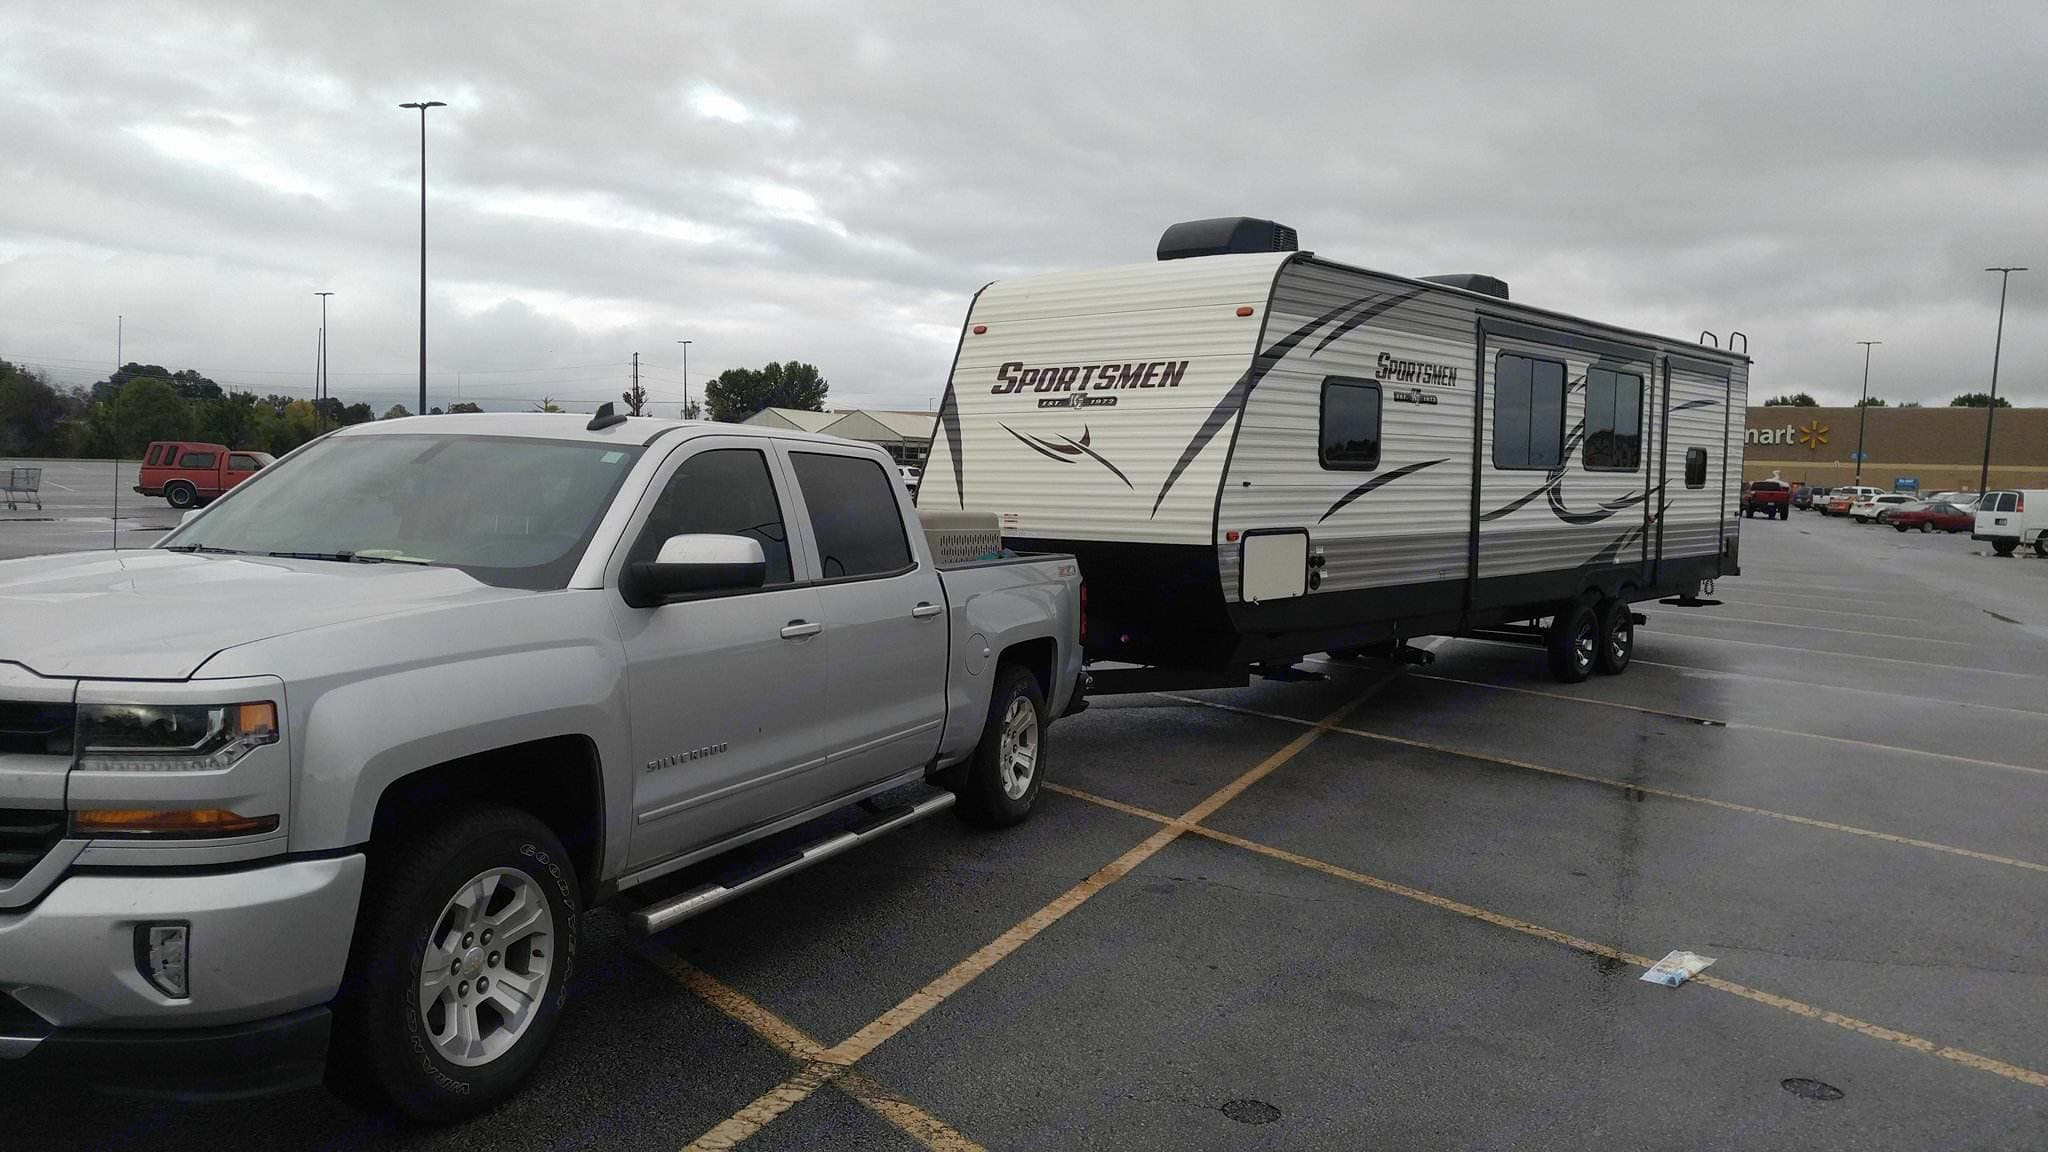 Us stopping at Walmart towning our camper home. K-Z Manufacturing Sportsmen 2018